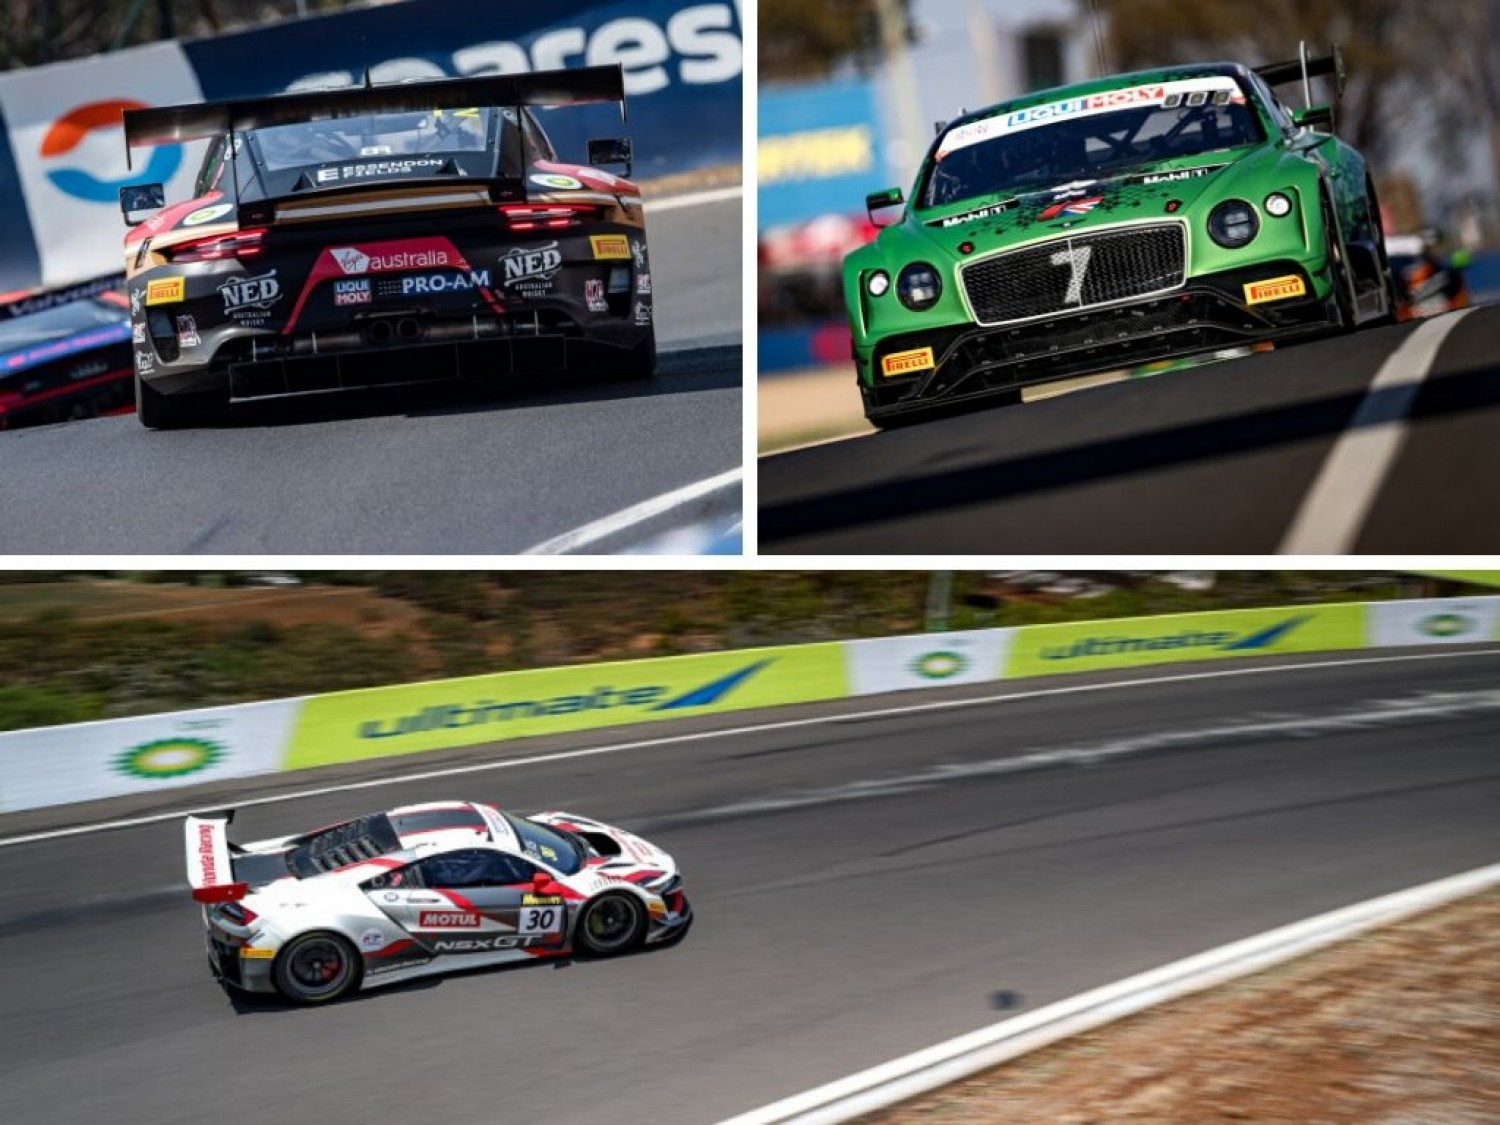 Leading Spa contenders to face off at Bathurst 12 Hour